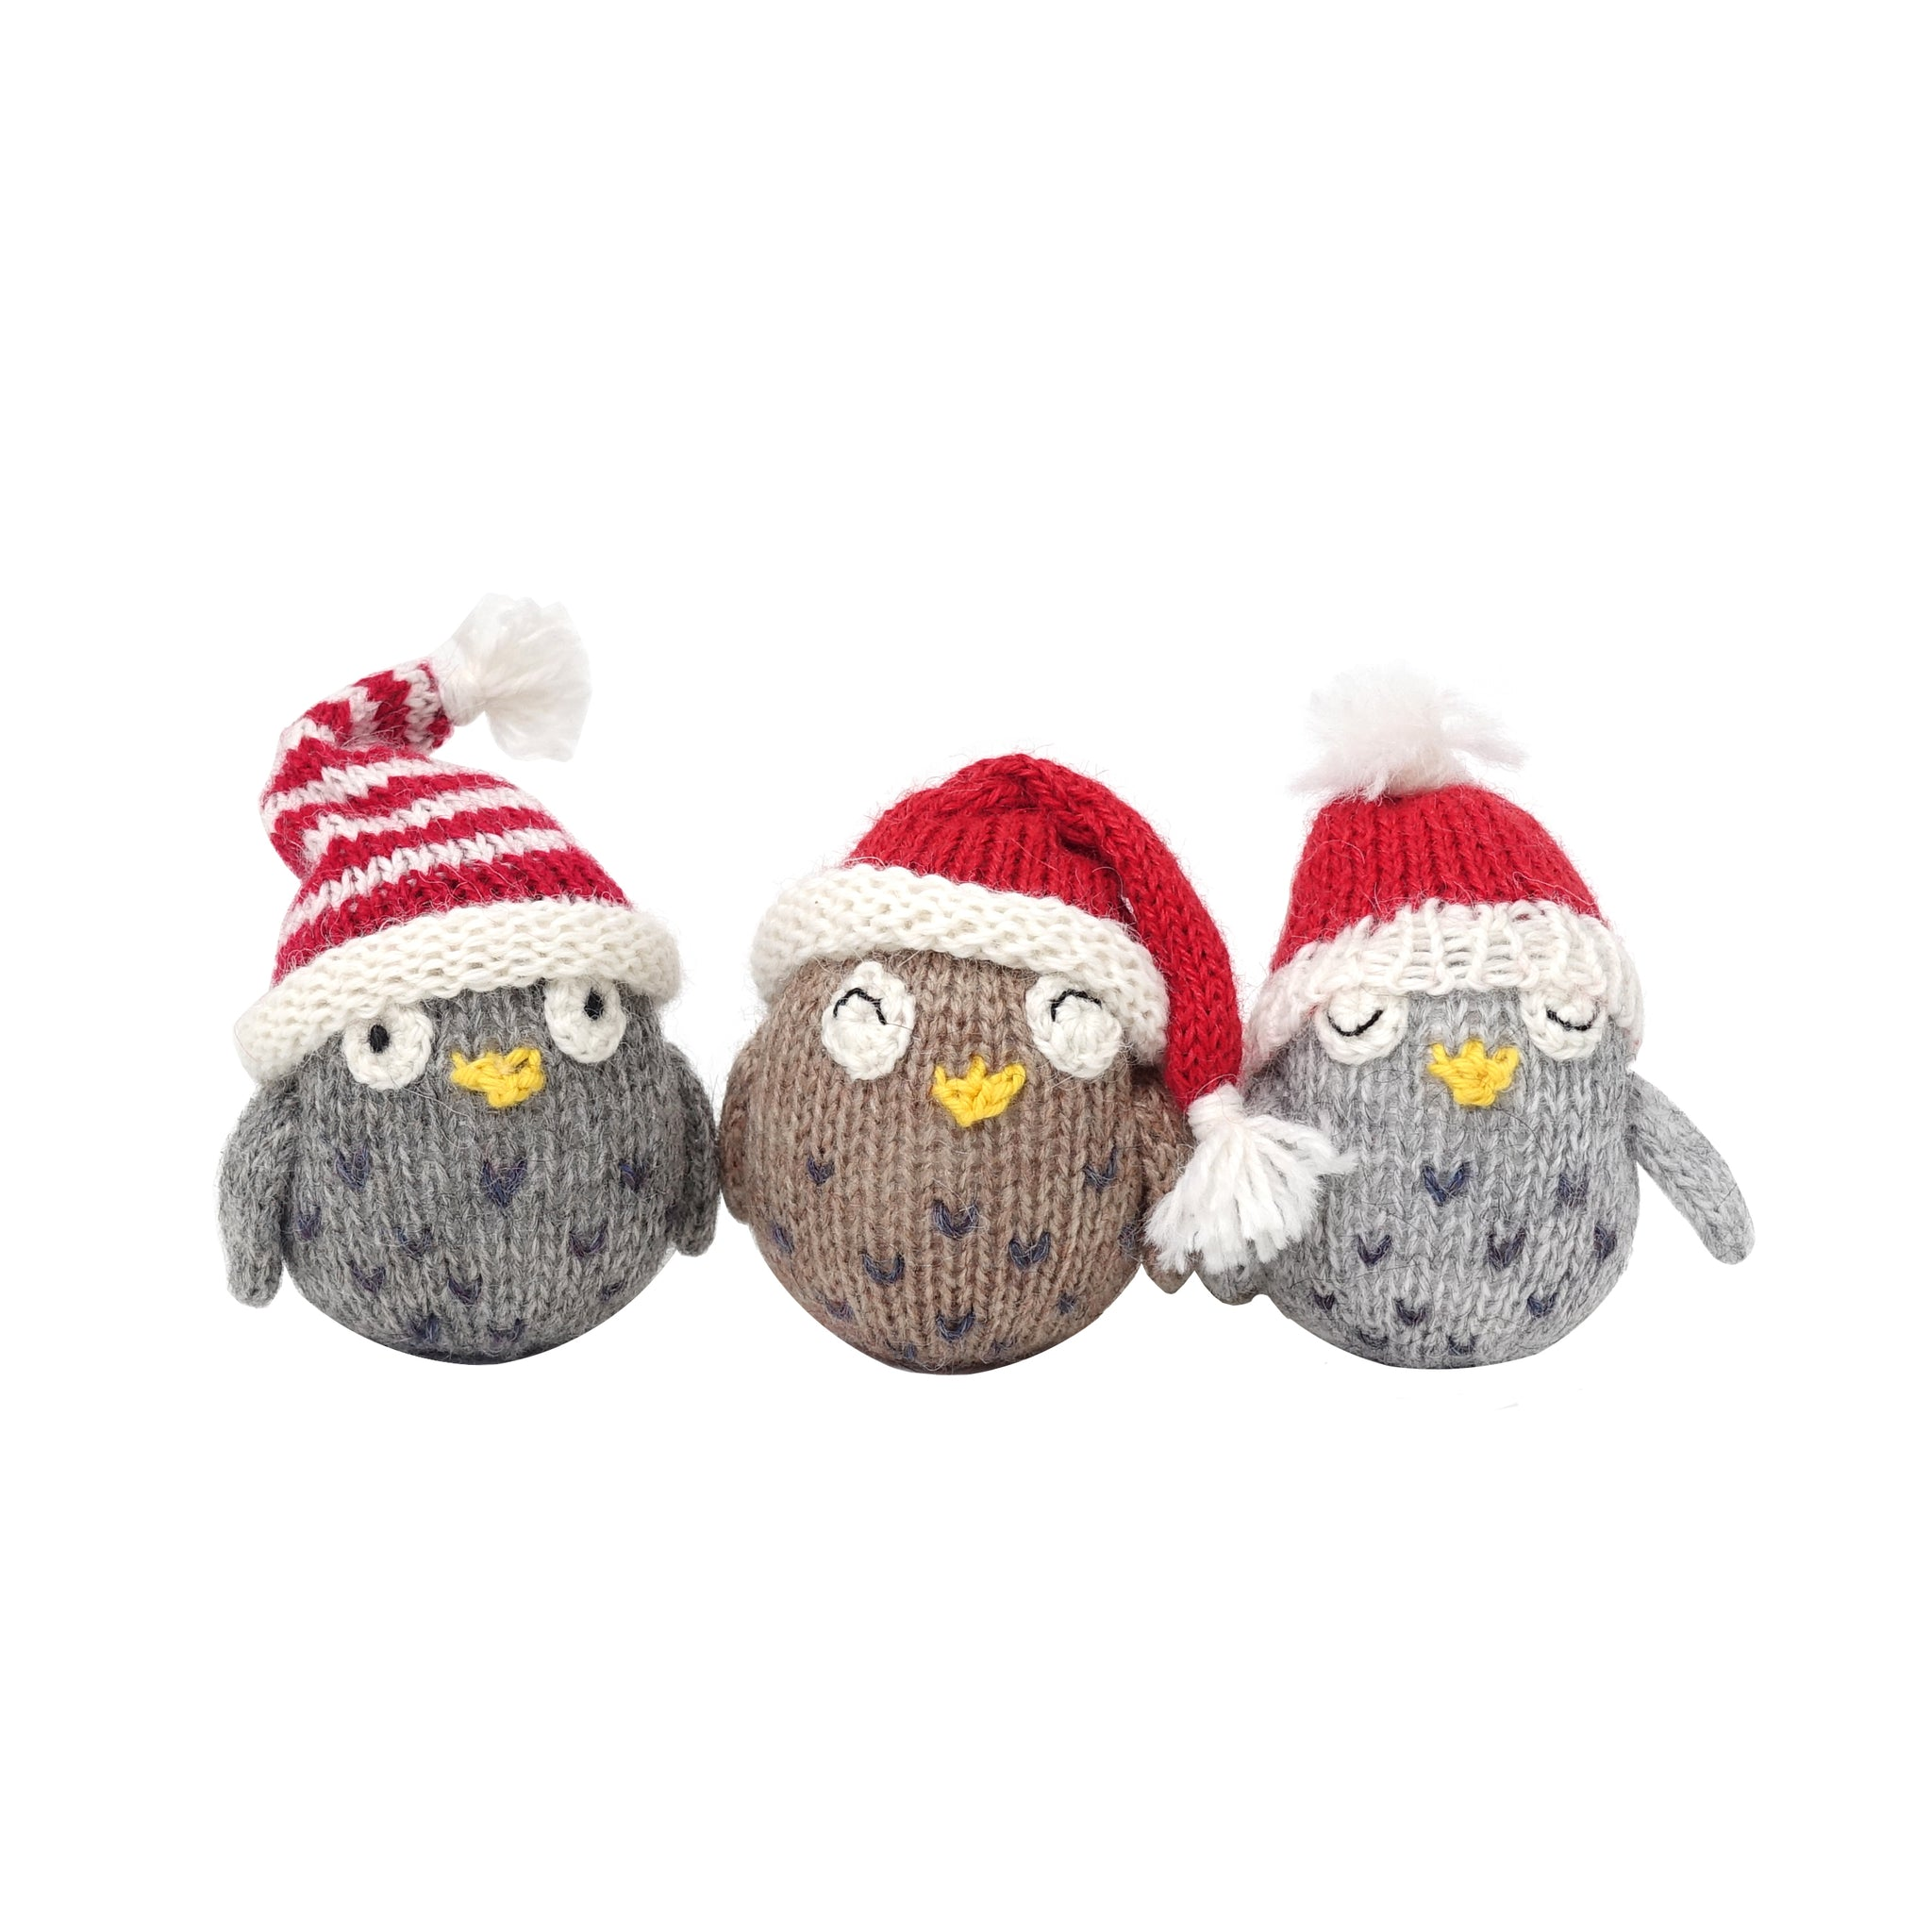 Owls with Hats Ornament- set of 3